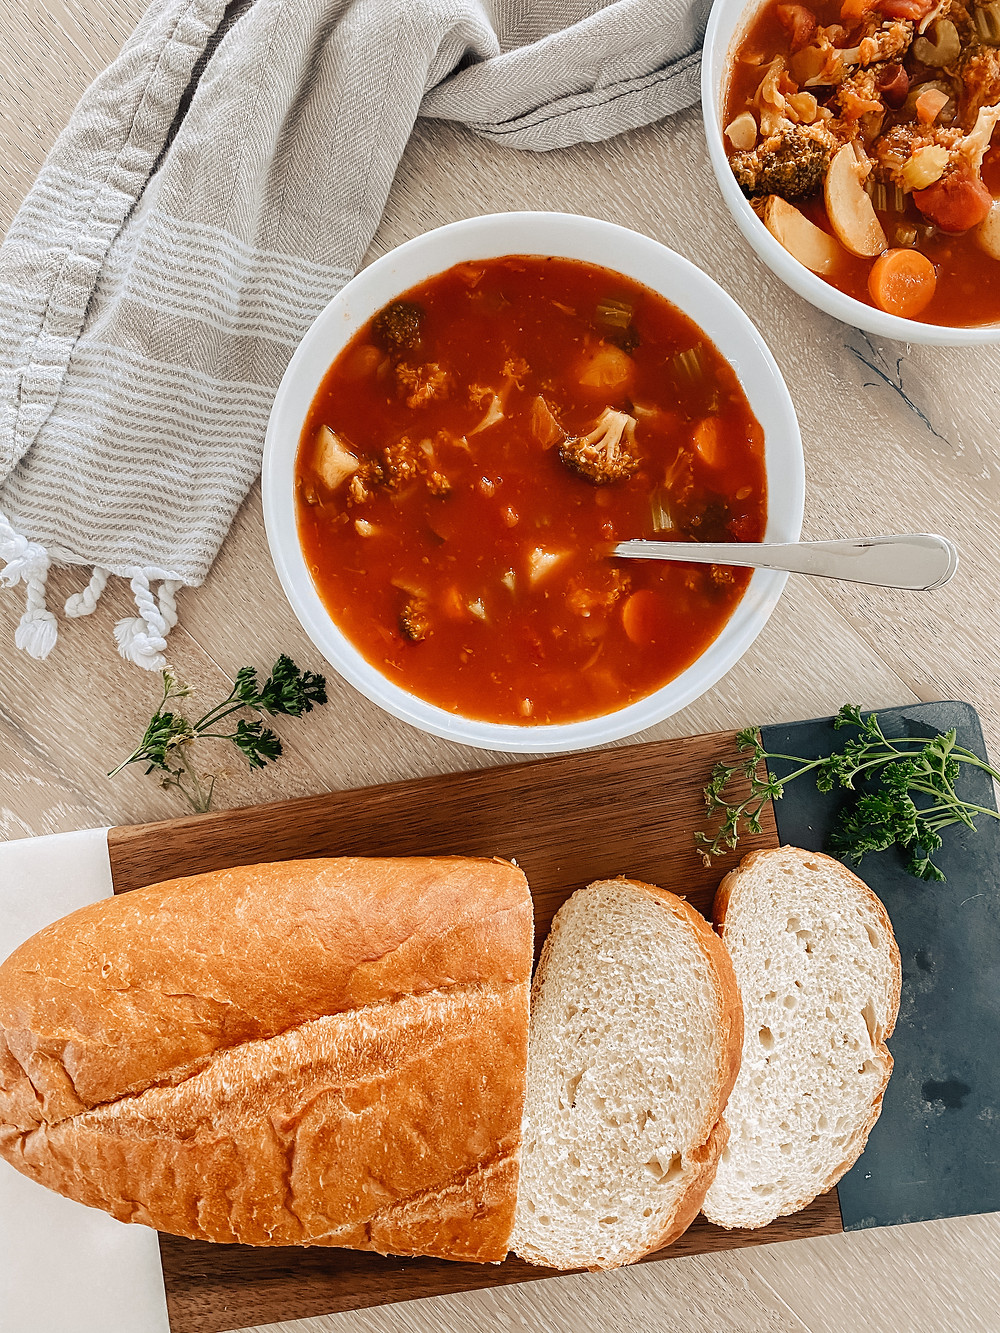 Two bowls of hearty vegetable soup sit on the table surrounded by a grey tea towel, sliced bread and fresh herbs.